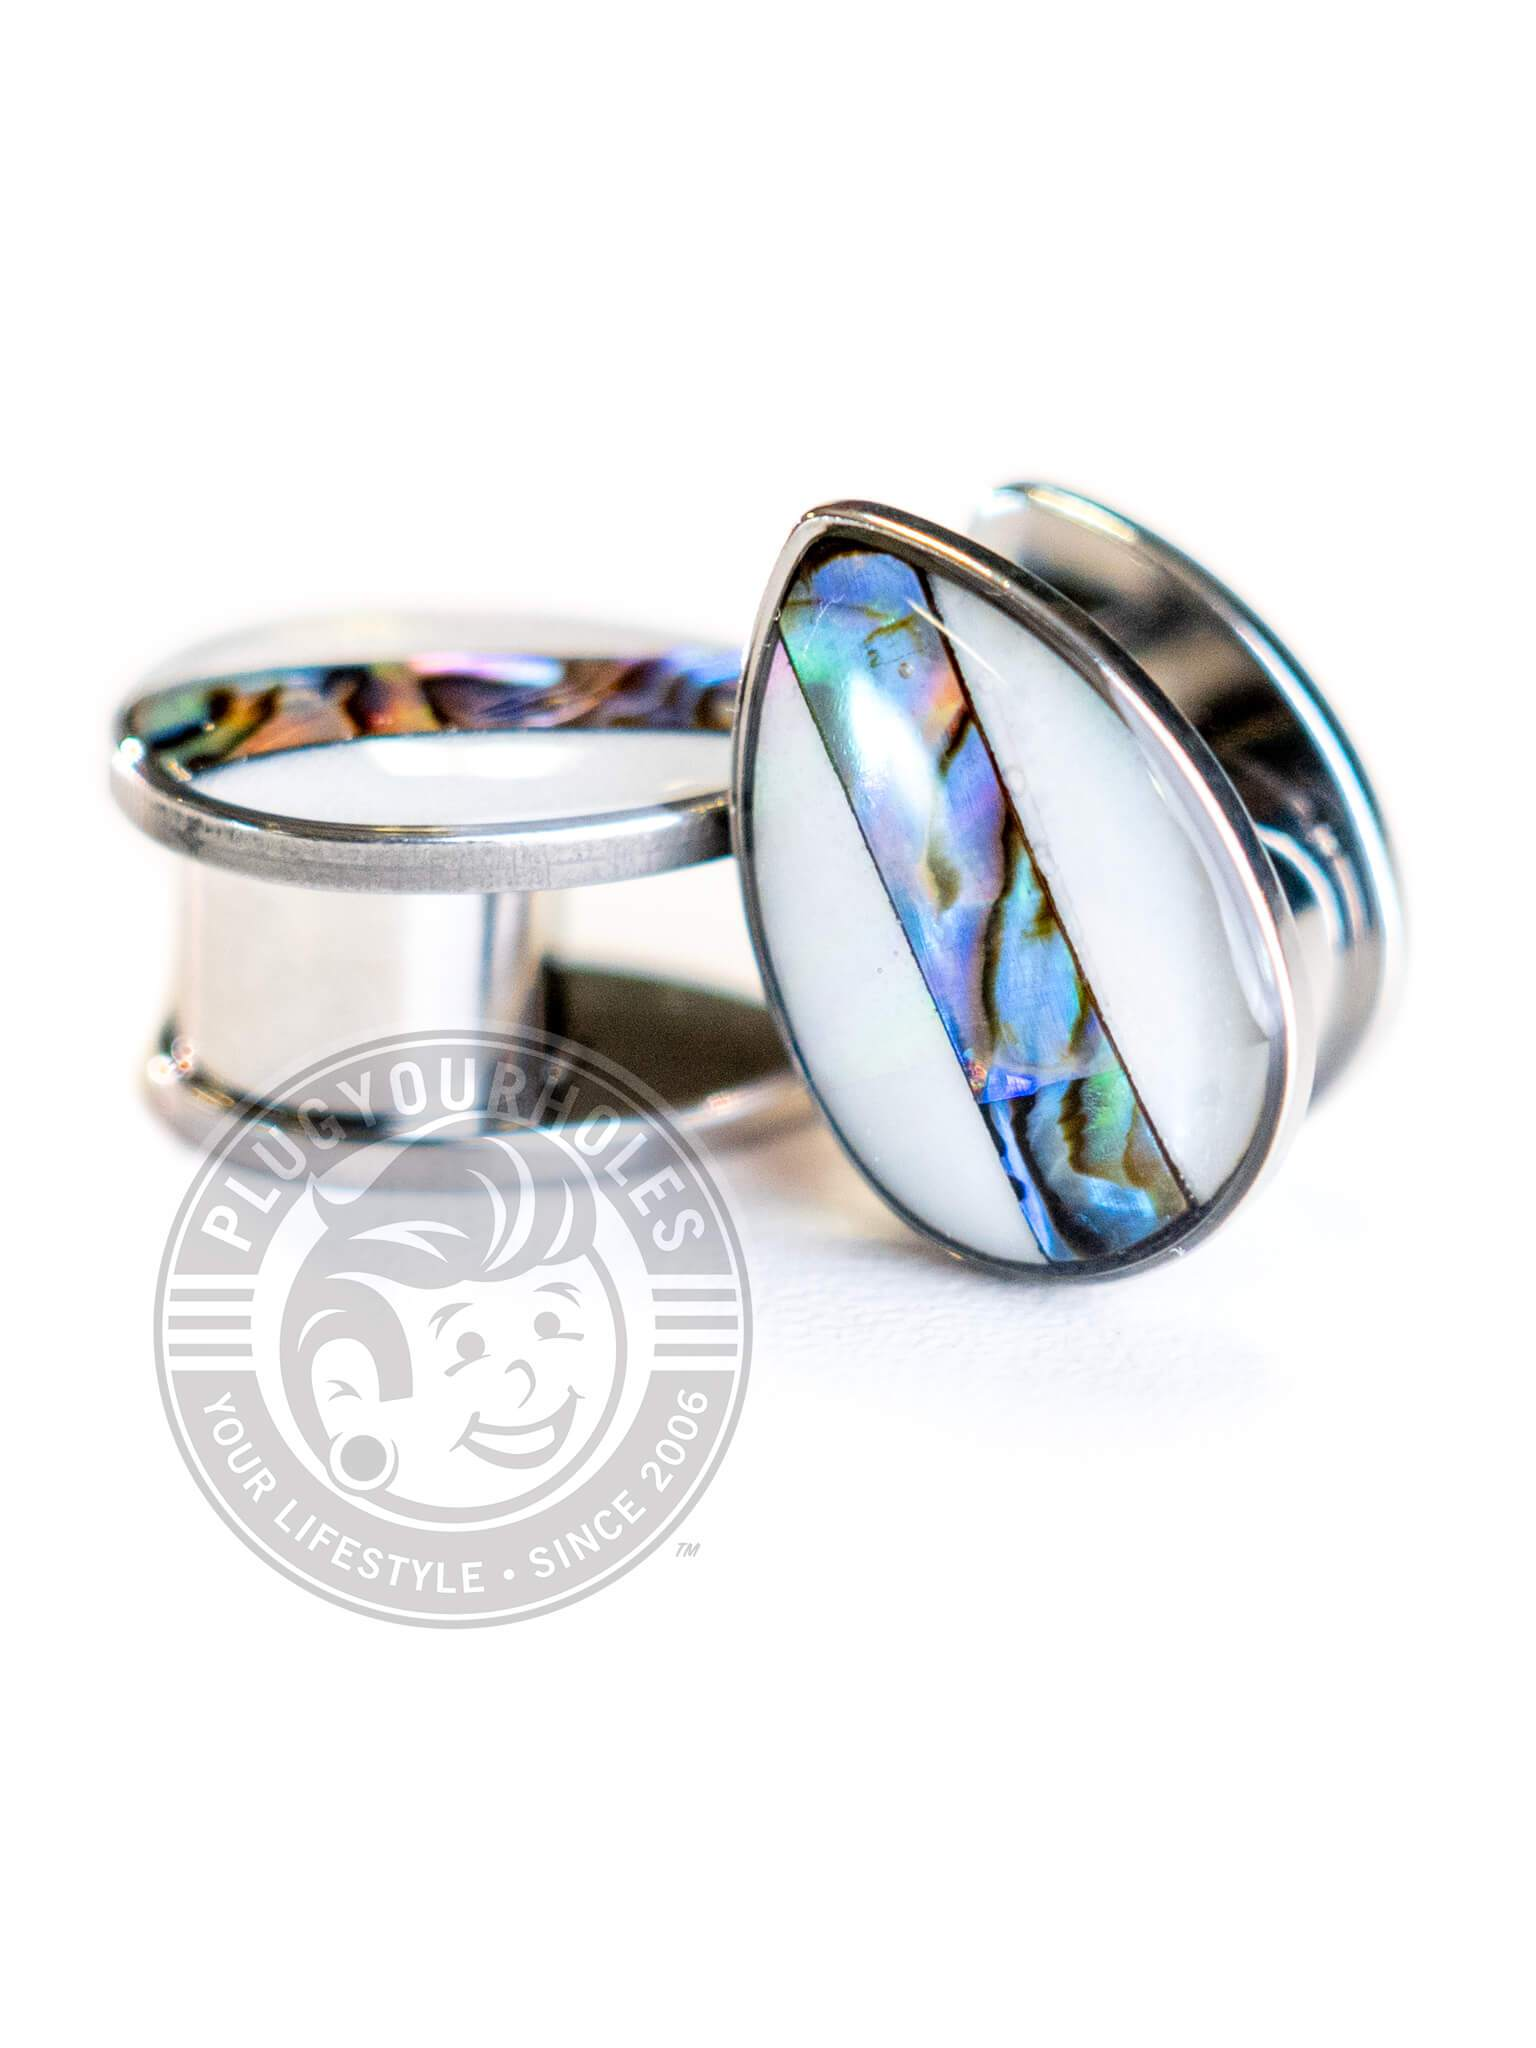 Teardrop Facade Abalone Stripe Steel Plugs